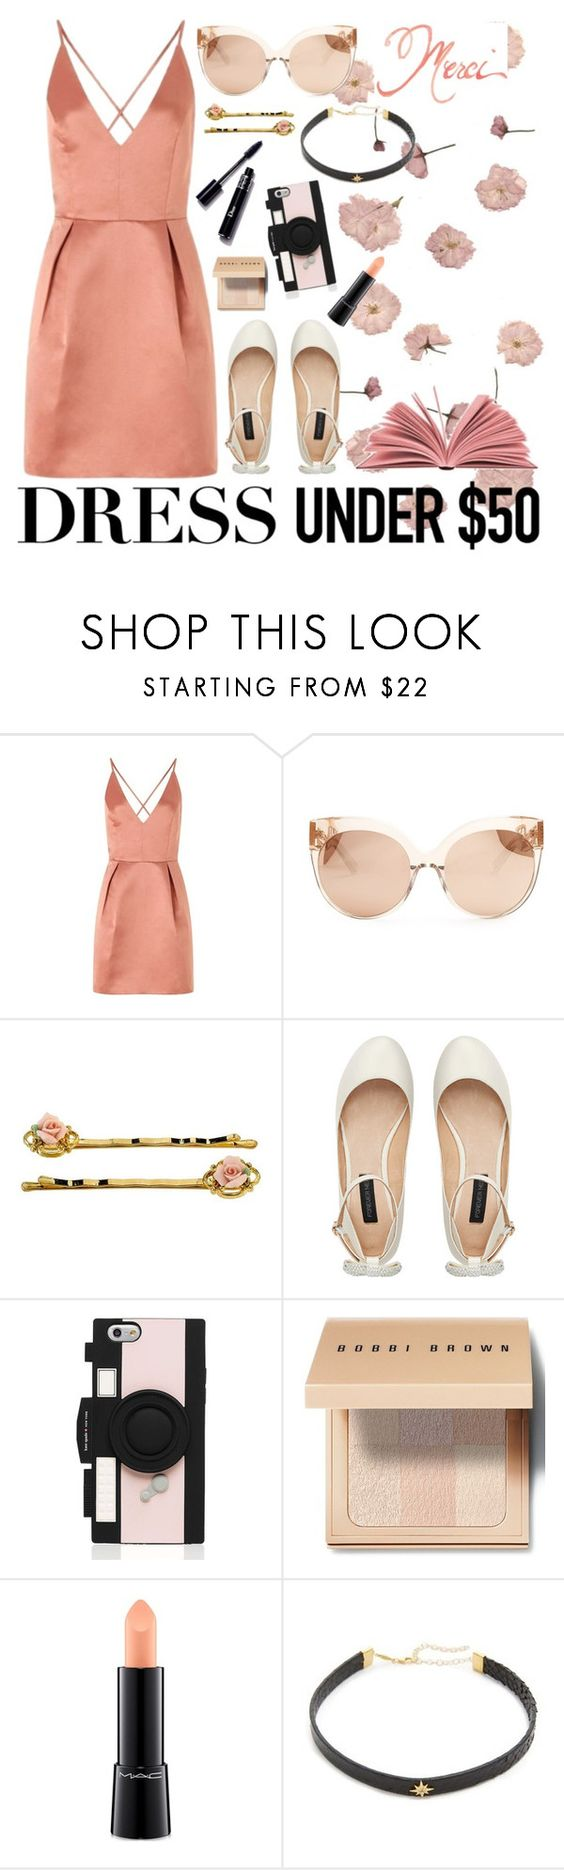 """Contest set #2"" by georgia-grace-sheldon ❤ liked on Polyvore featuring Lipsy, Linda Farrow, Forever New, Kate Spade, Bobbi Brown Cosmetics, MAC Cosmetics, Jacquie Aiche and Dressunder50"